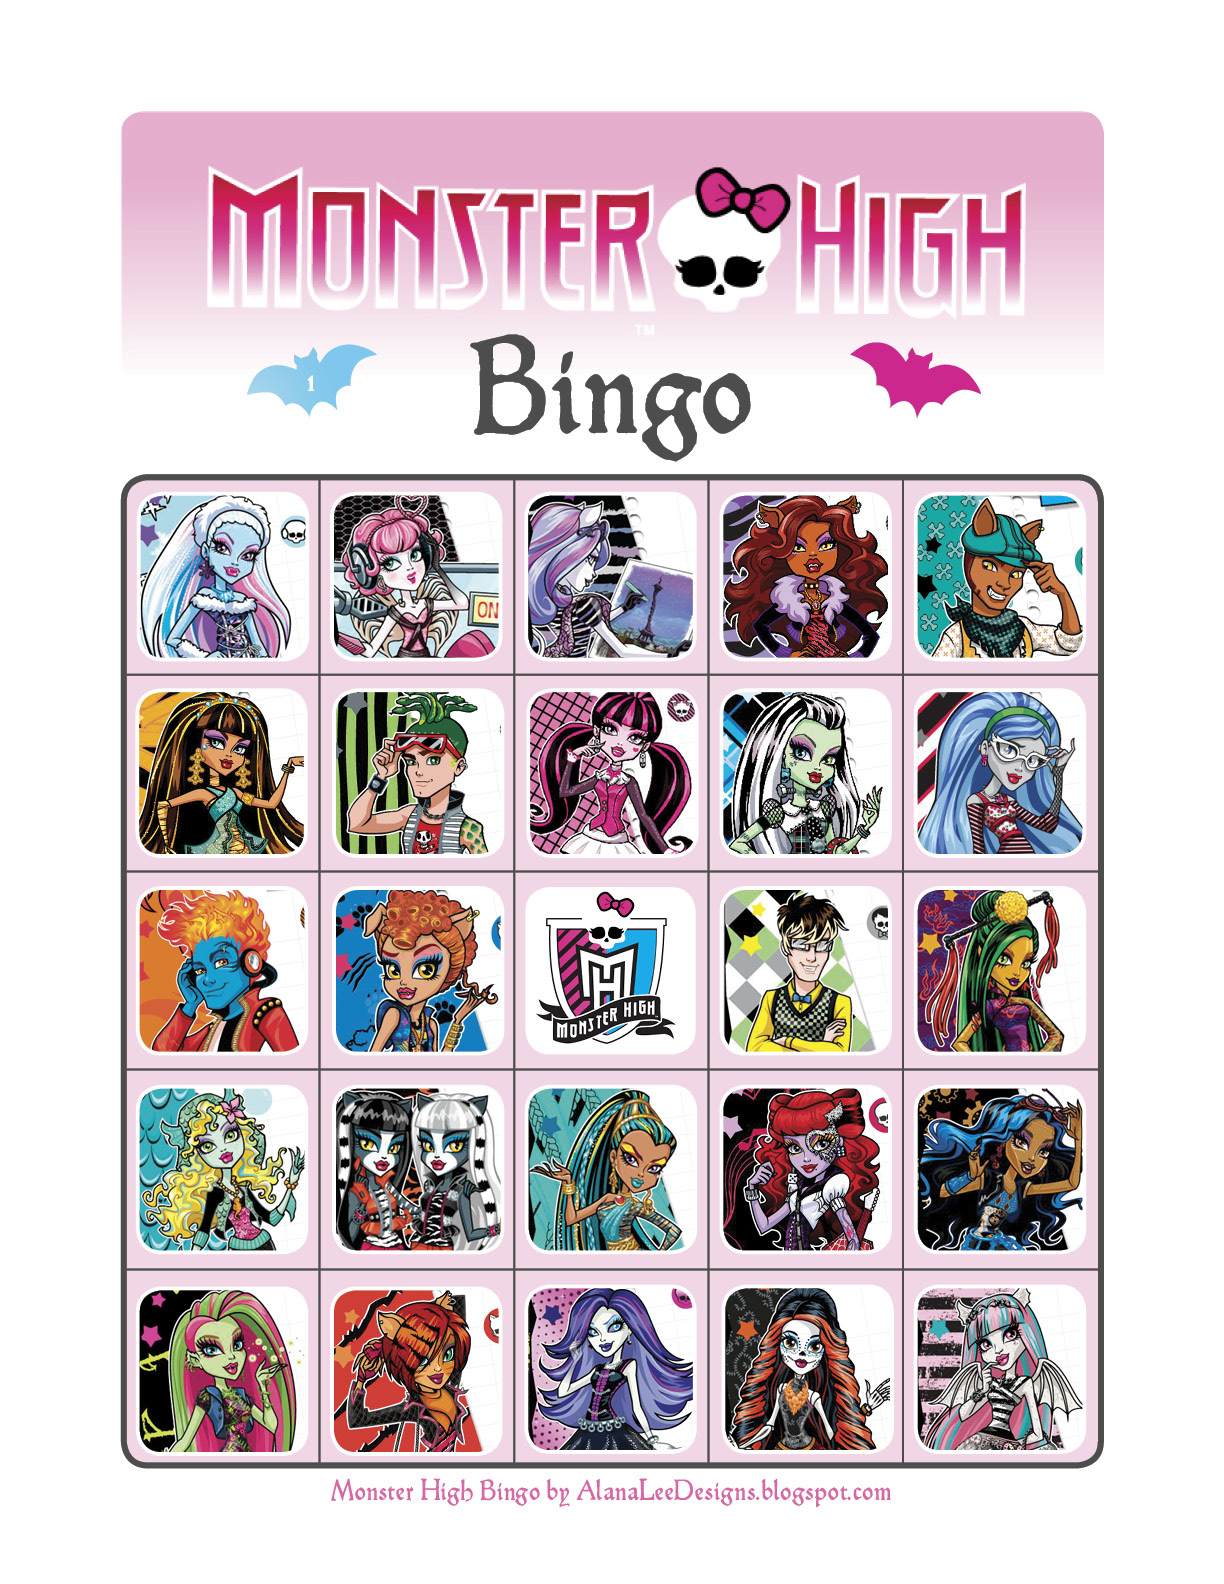 Printables Monster High Worksheets alana lee designs custom photo products with personality free including draculaura clawdeen wolf clawd frankie stein cleo de nile lagoona and ghoulia yelps plus brand new characters